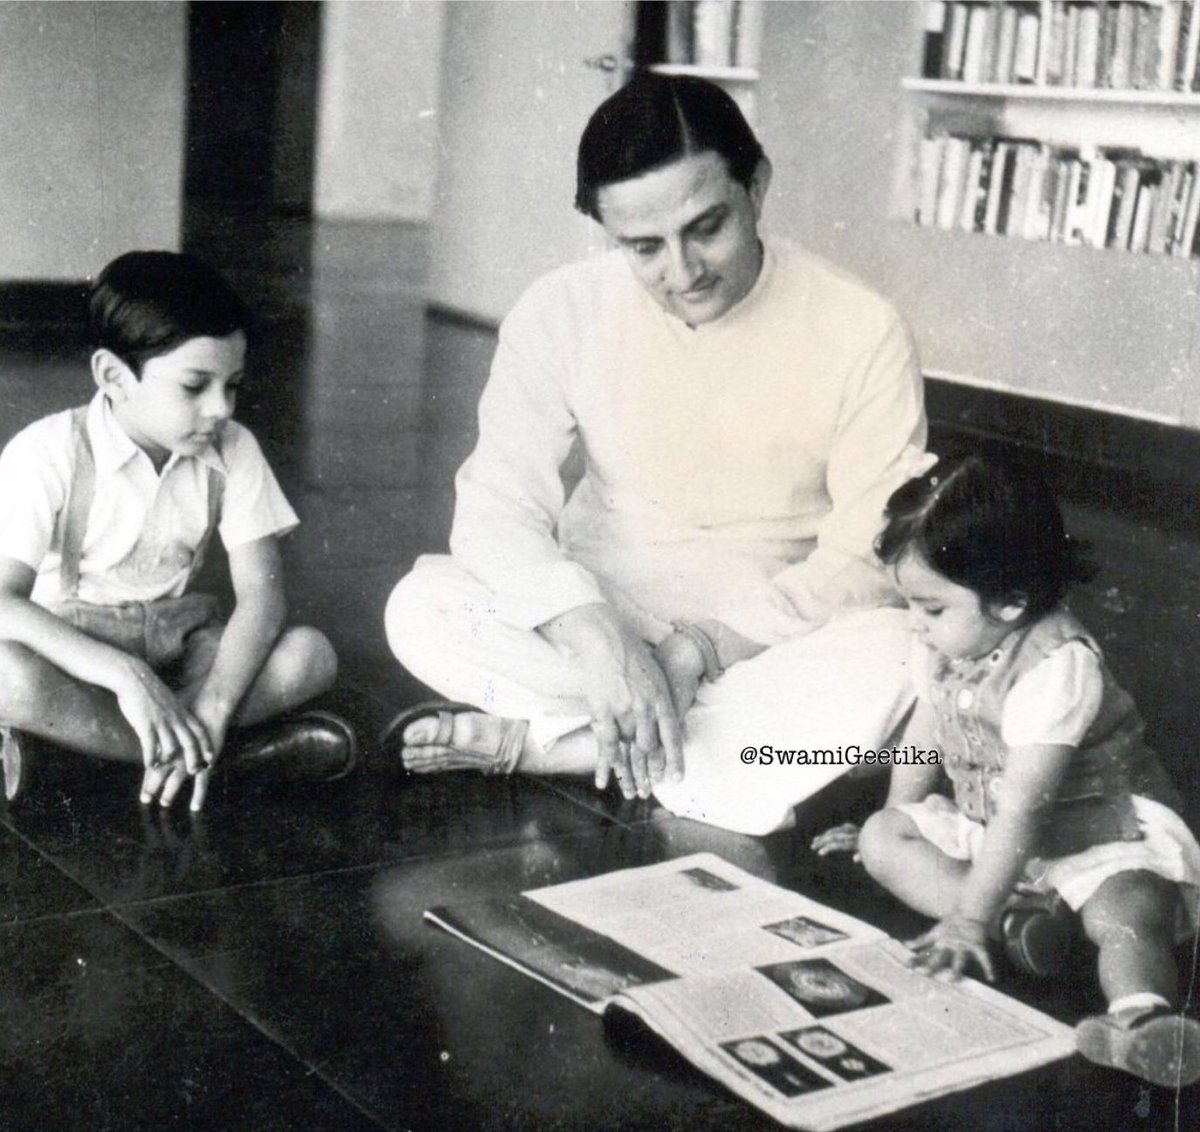 """""""He who can listen to the music in the midst of noise can achieve great things"""" Remebering the father of Indian space programme ISRO,the innovator and visionary Vikram Sarabhai. Man who visualized modern India and made  it a reality  #VikramSarabhai #SundayMotivation <br>http://pic.twitter.com/n9ZTtserrI"""